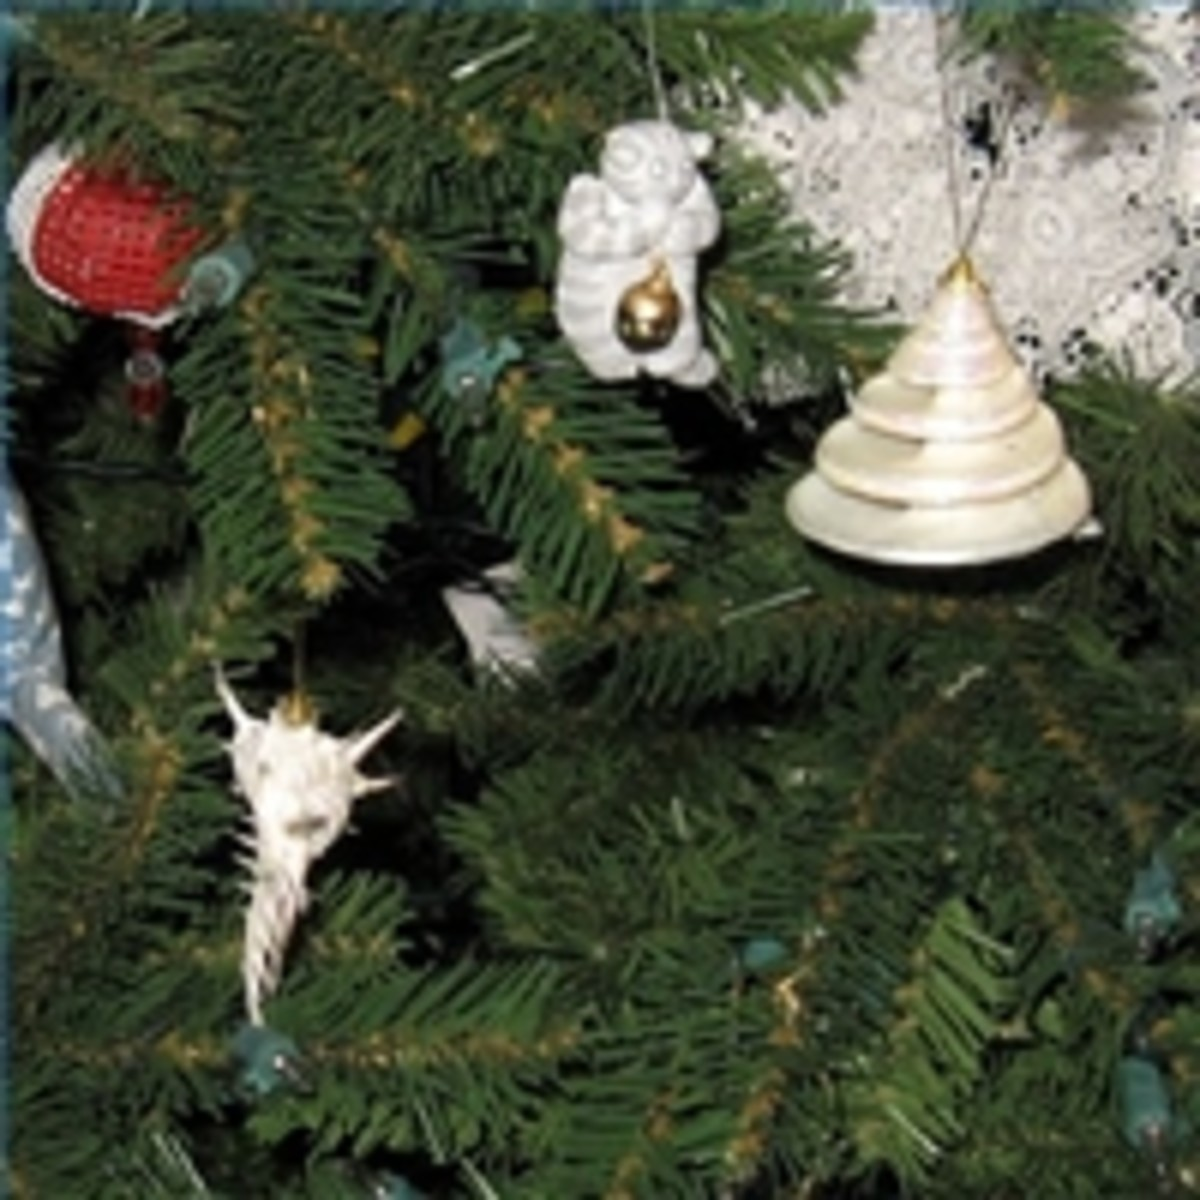 This is a close-up of my own Florida Christmas tree so you can see the pretty seashells on it.